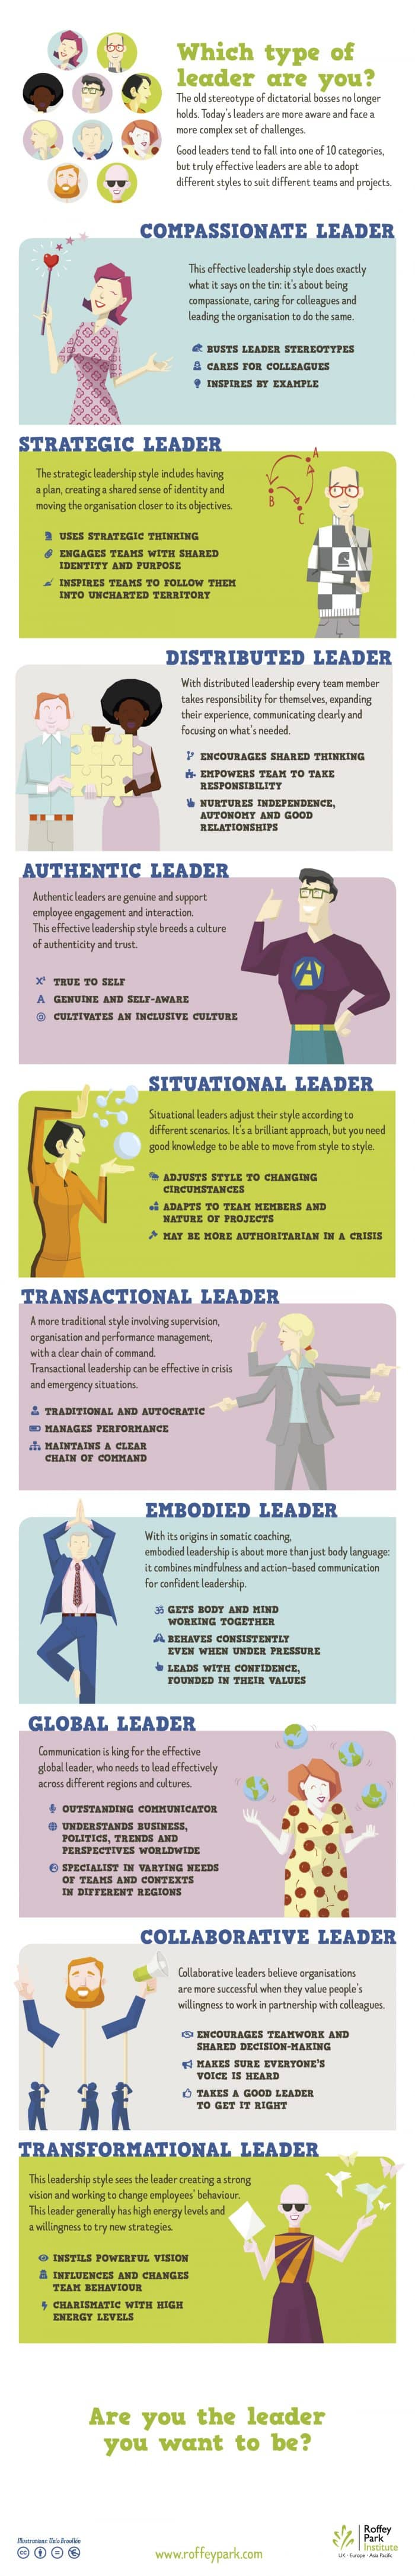 An infographic describing different leadership styles